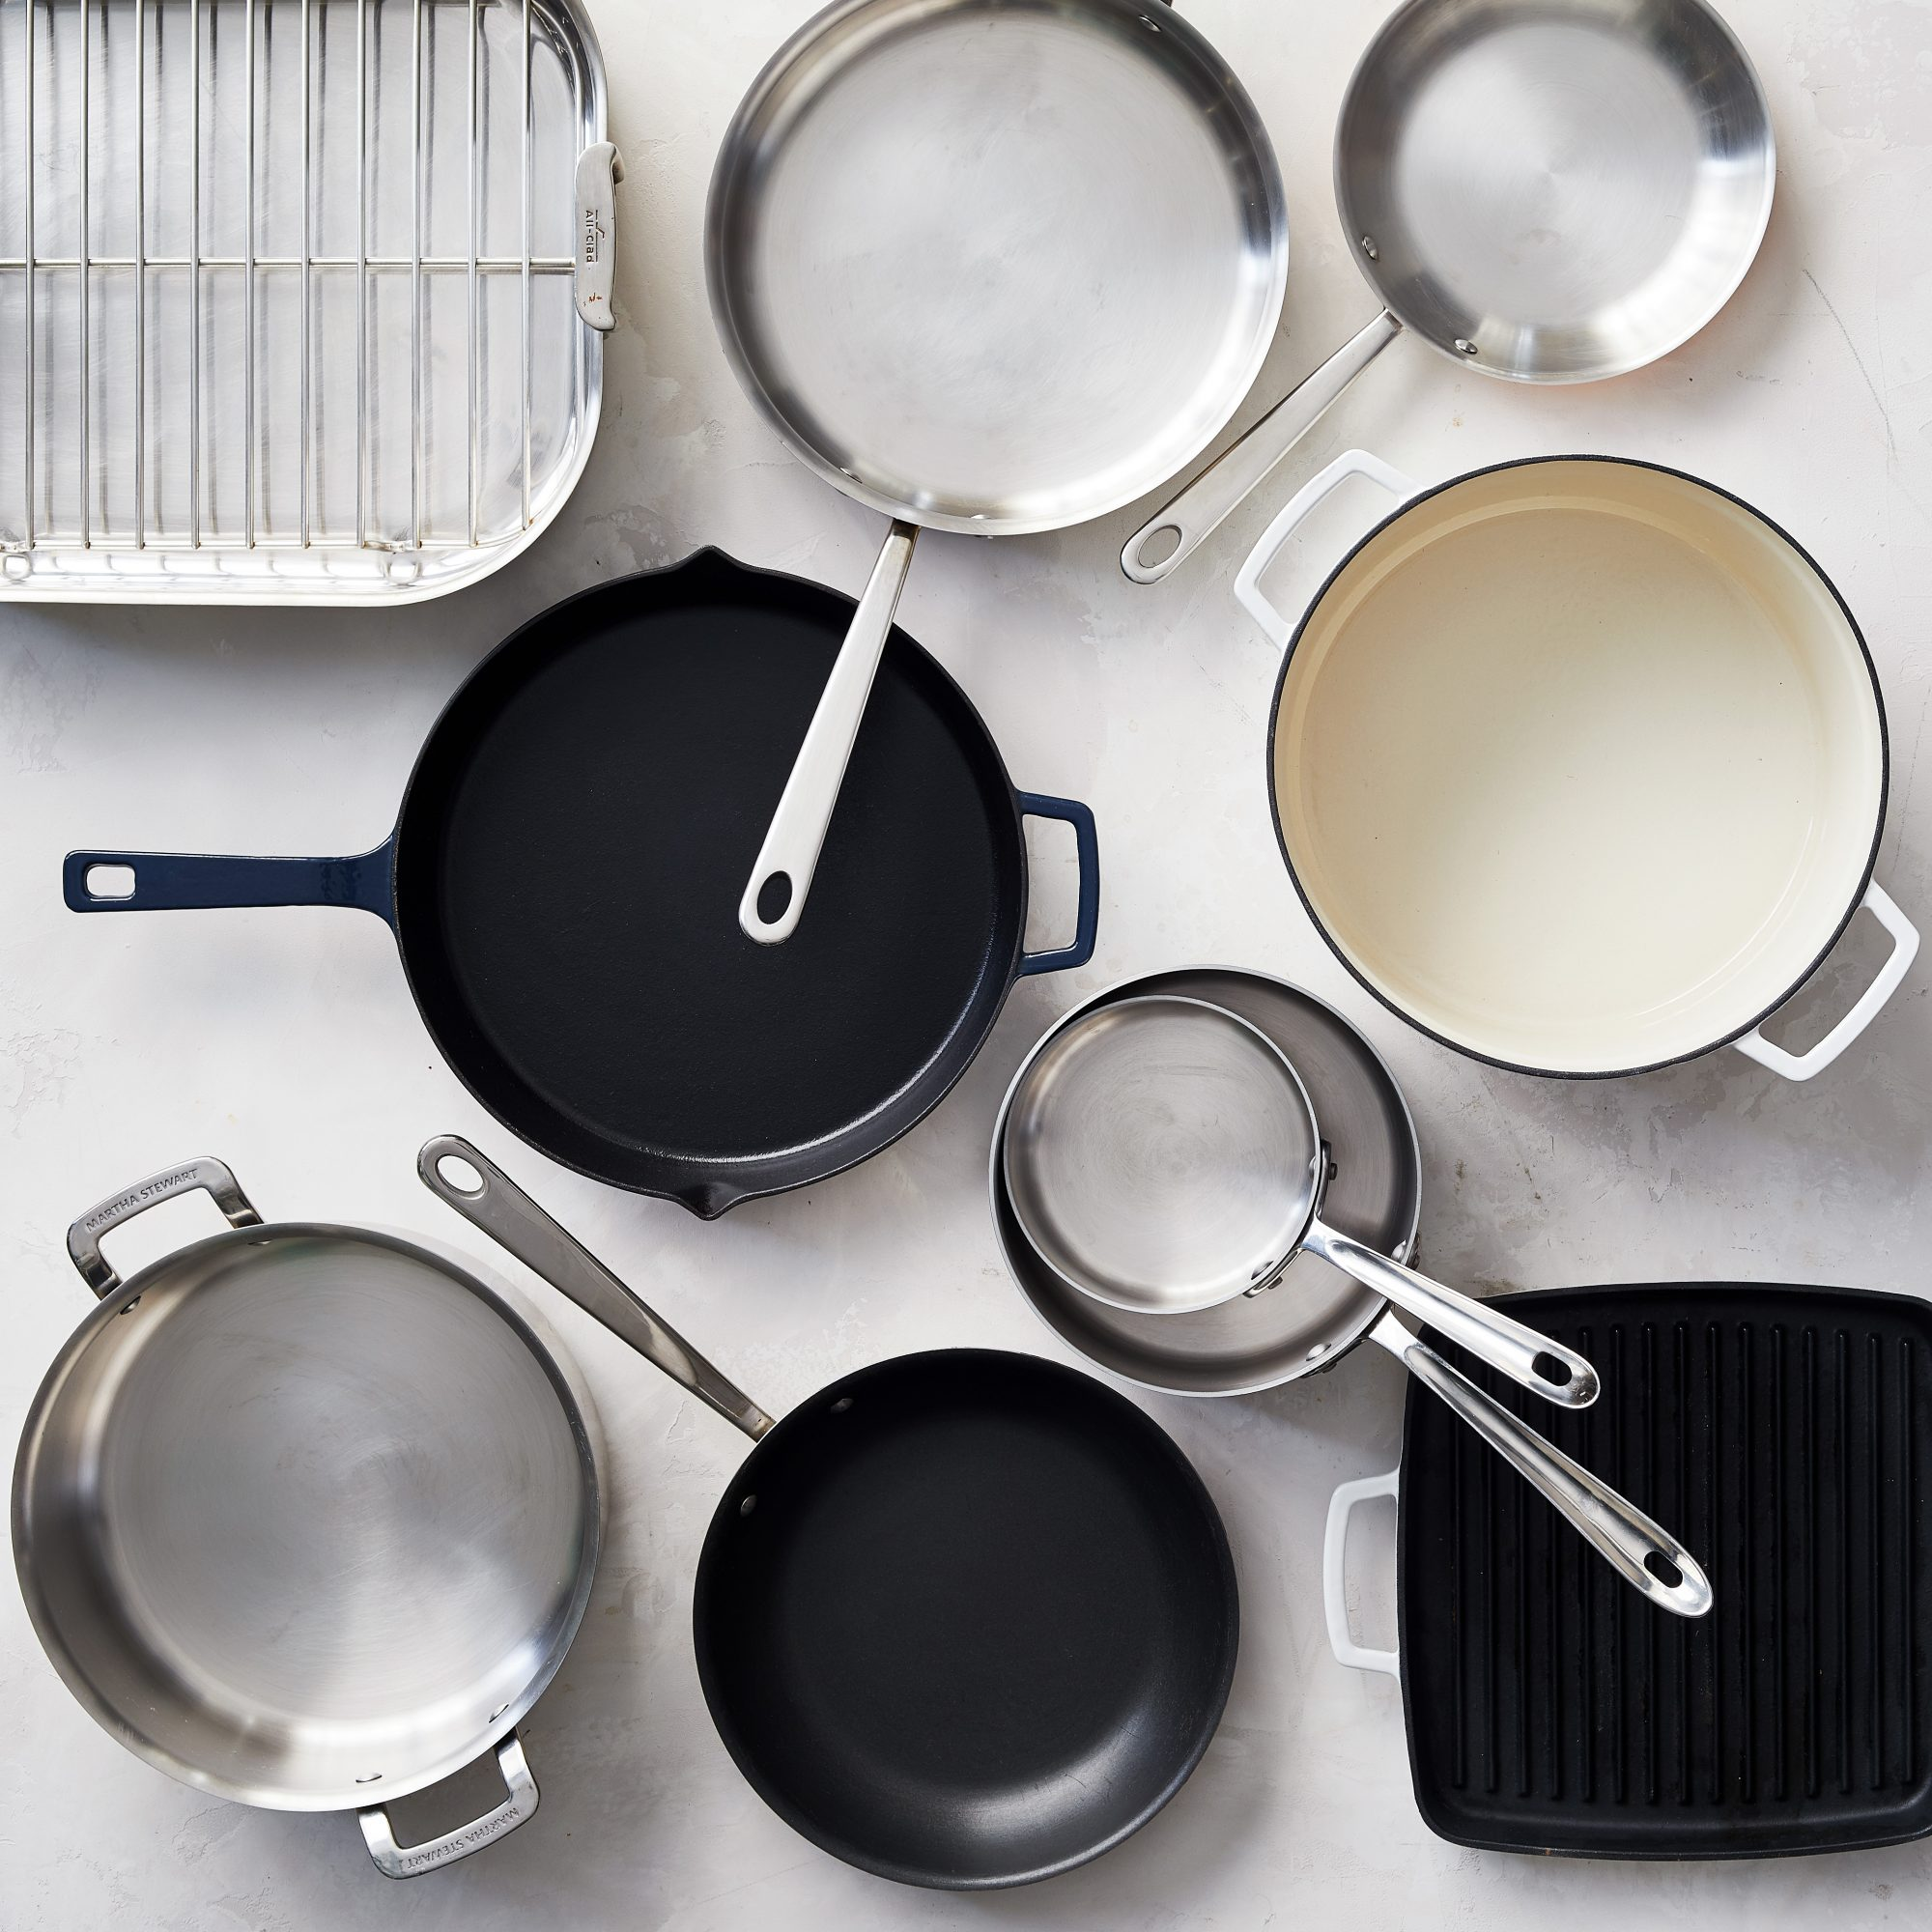 cooking baking pans